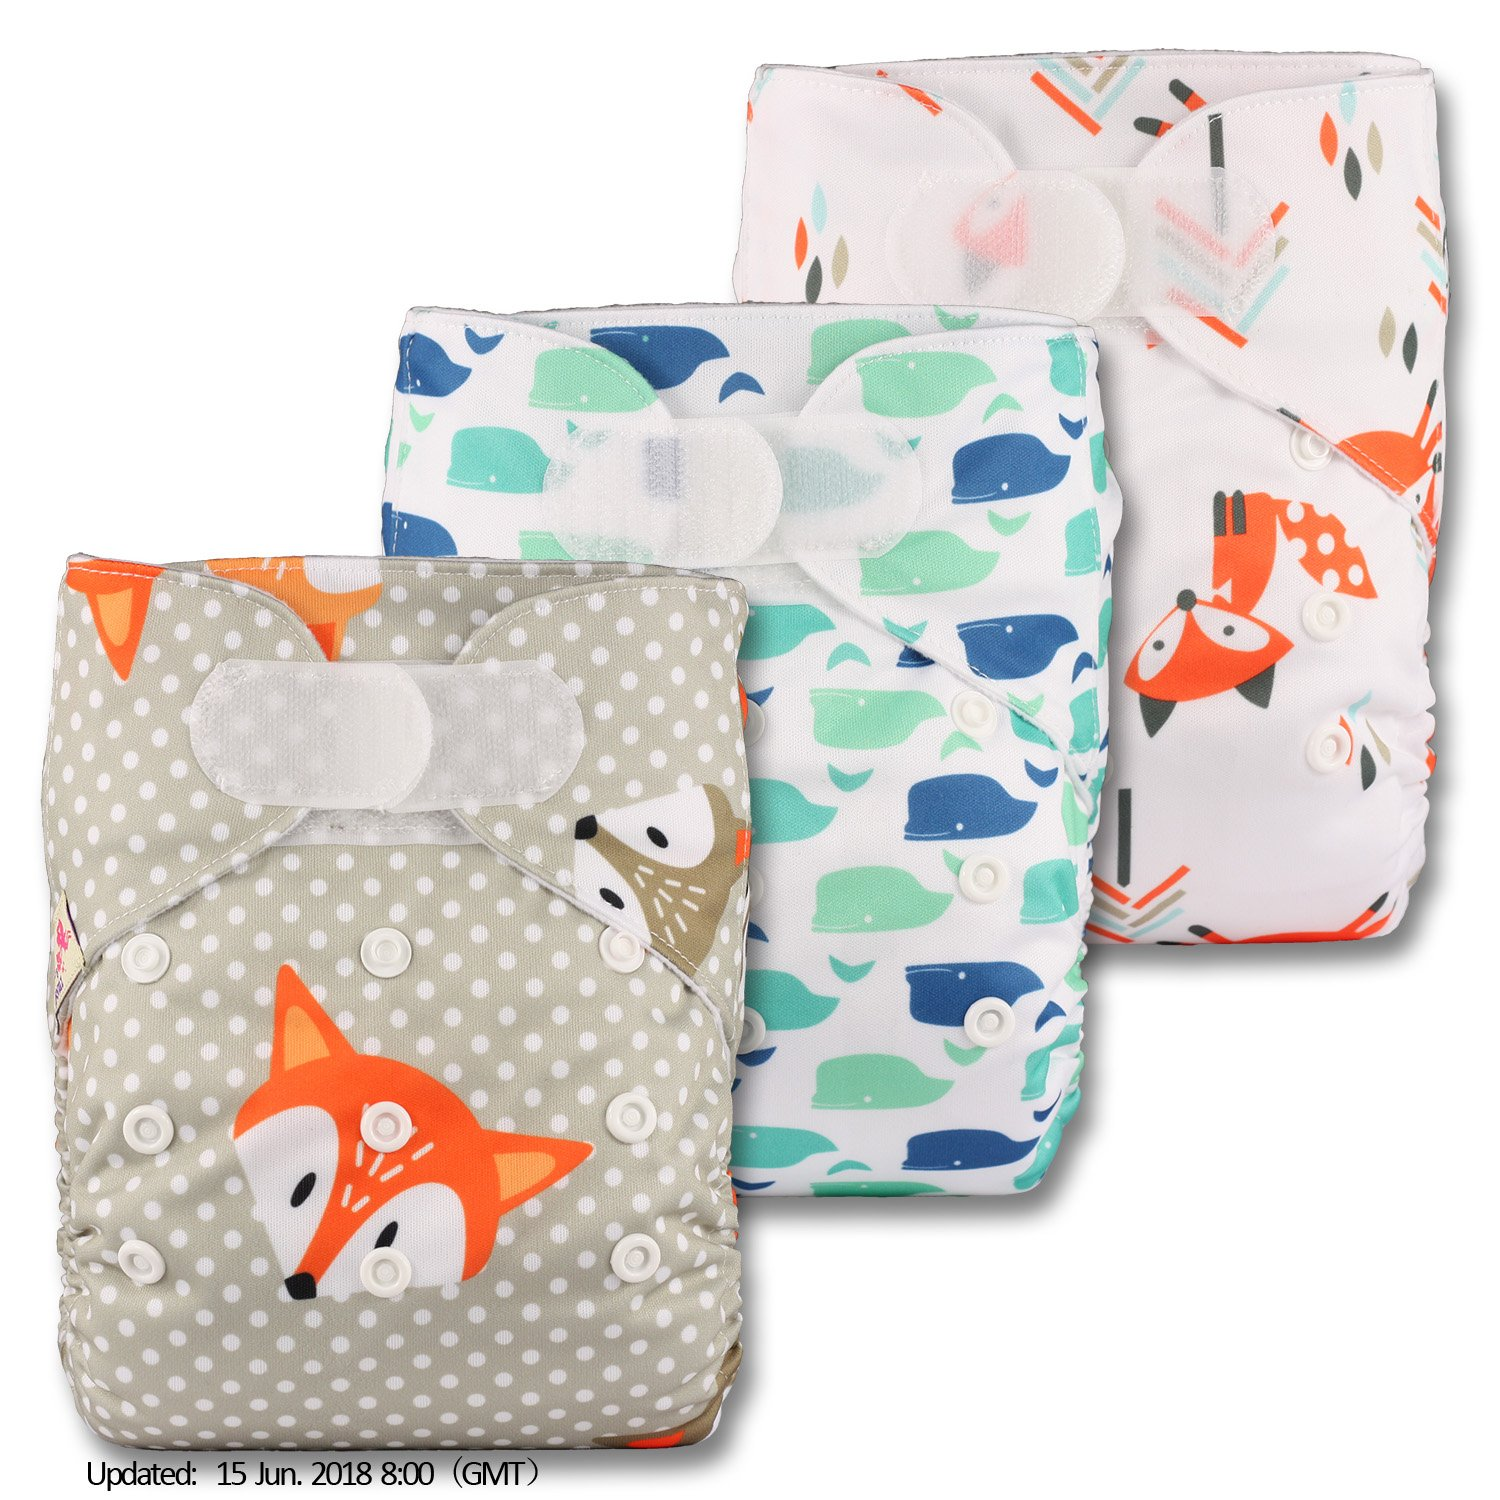 Fastener: Popper Reusable Pocket Cloth Nappy with 3 Microfibre Inserts Patterns 317 Littles /& Bloomz Set of 3